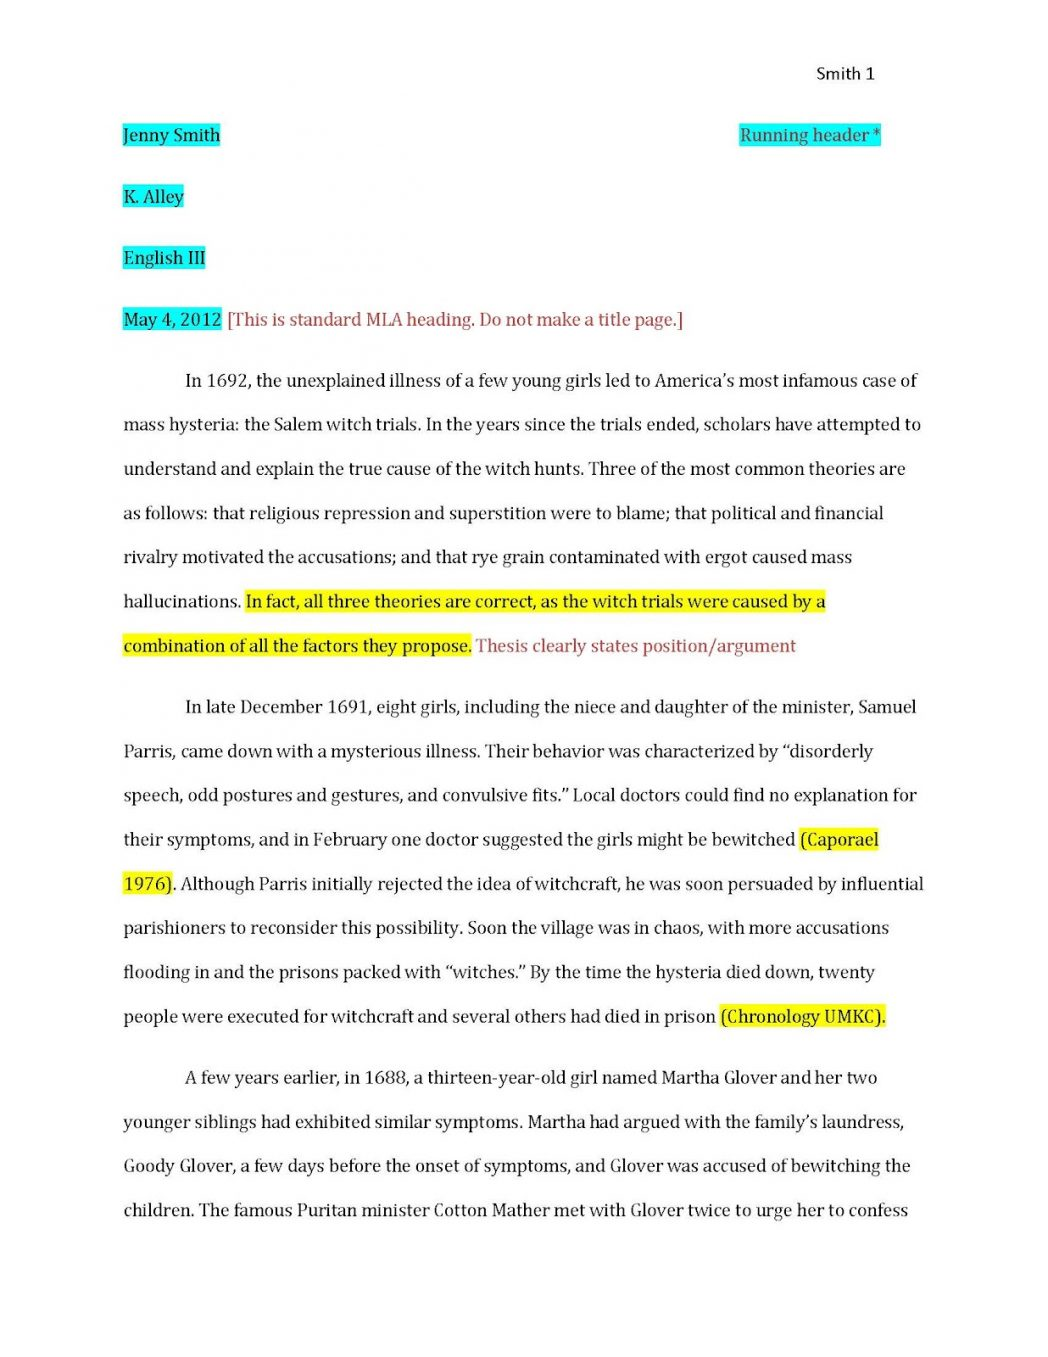 002 Mla Format Essay Generator Author Date References System Ready Set Automaticpaper P 1048x1357 Wondrous Funny Free Software Bot Full